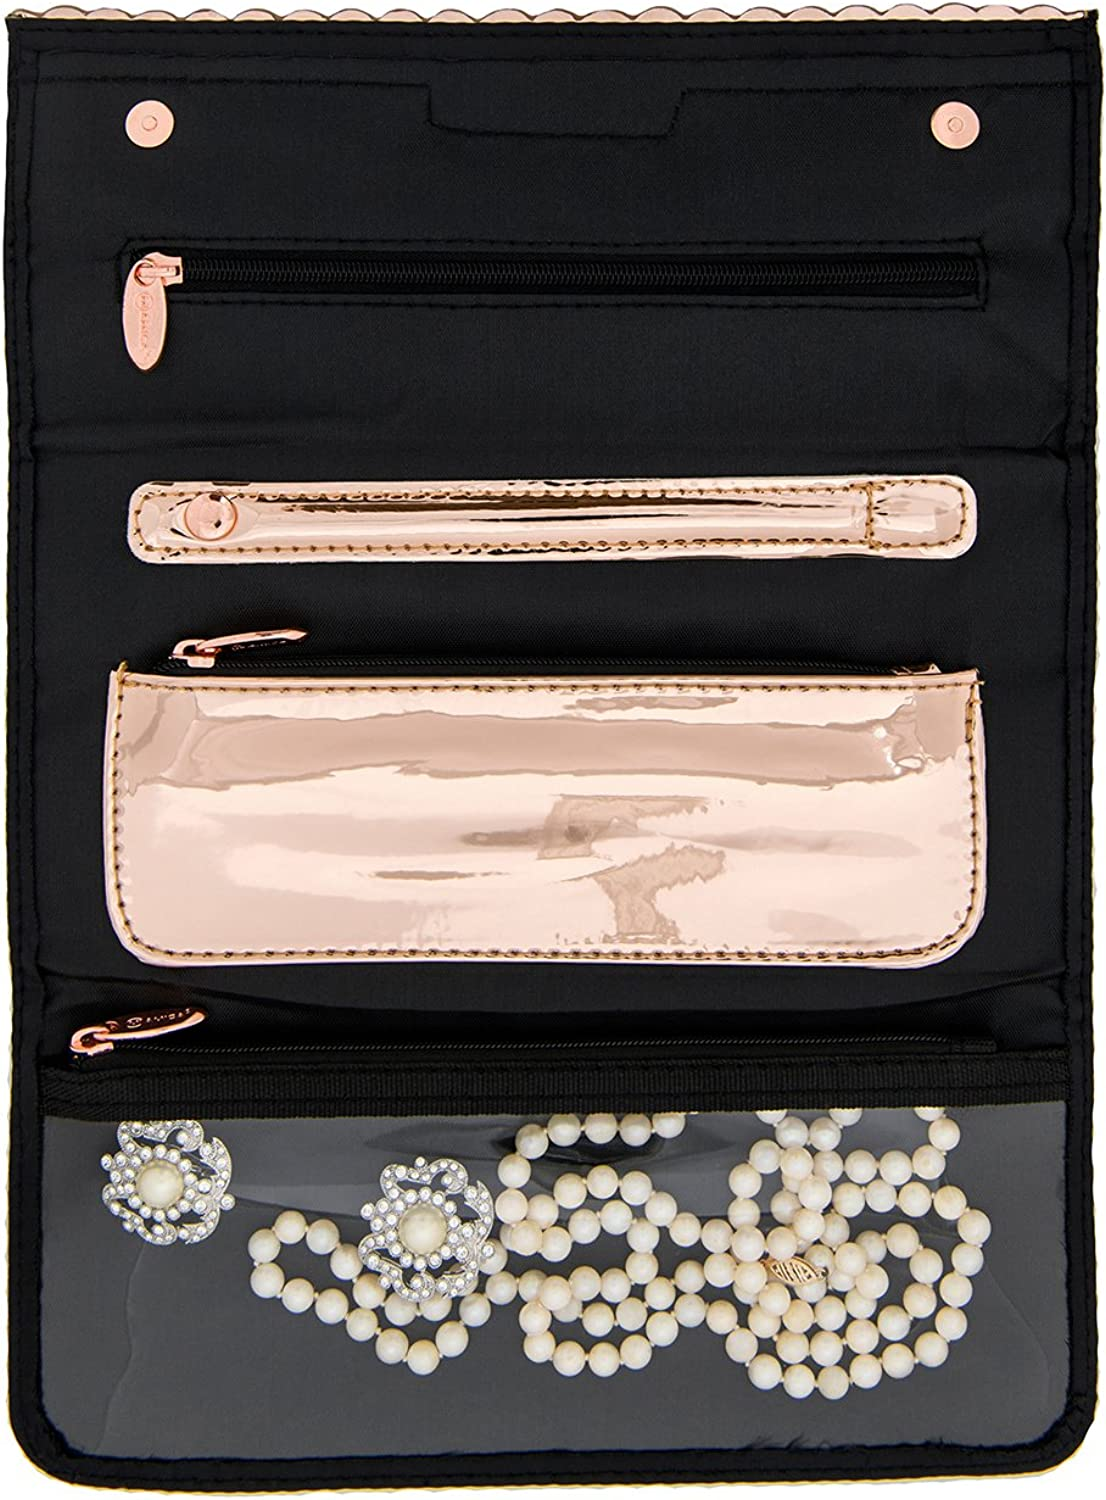 Miamica Tri-fold Jewelry Case Sparkly Things